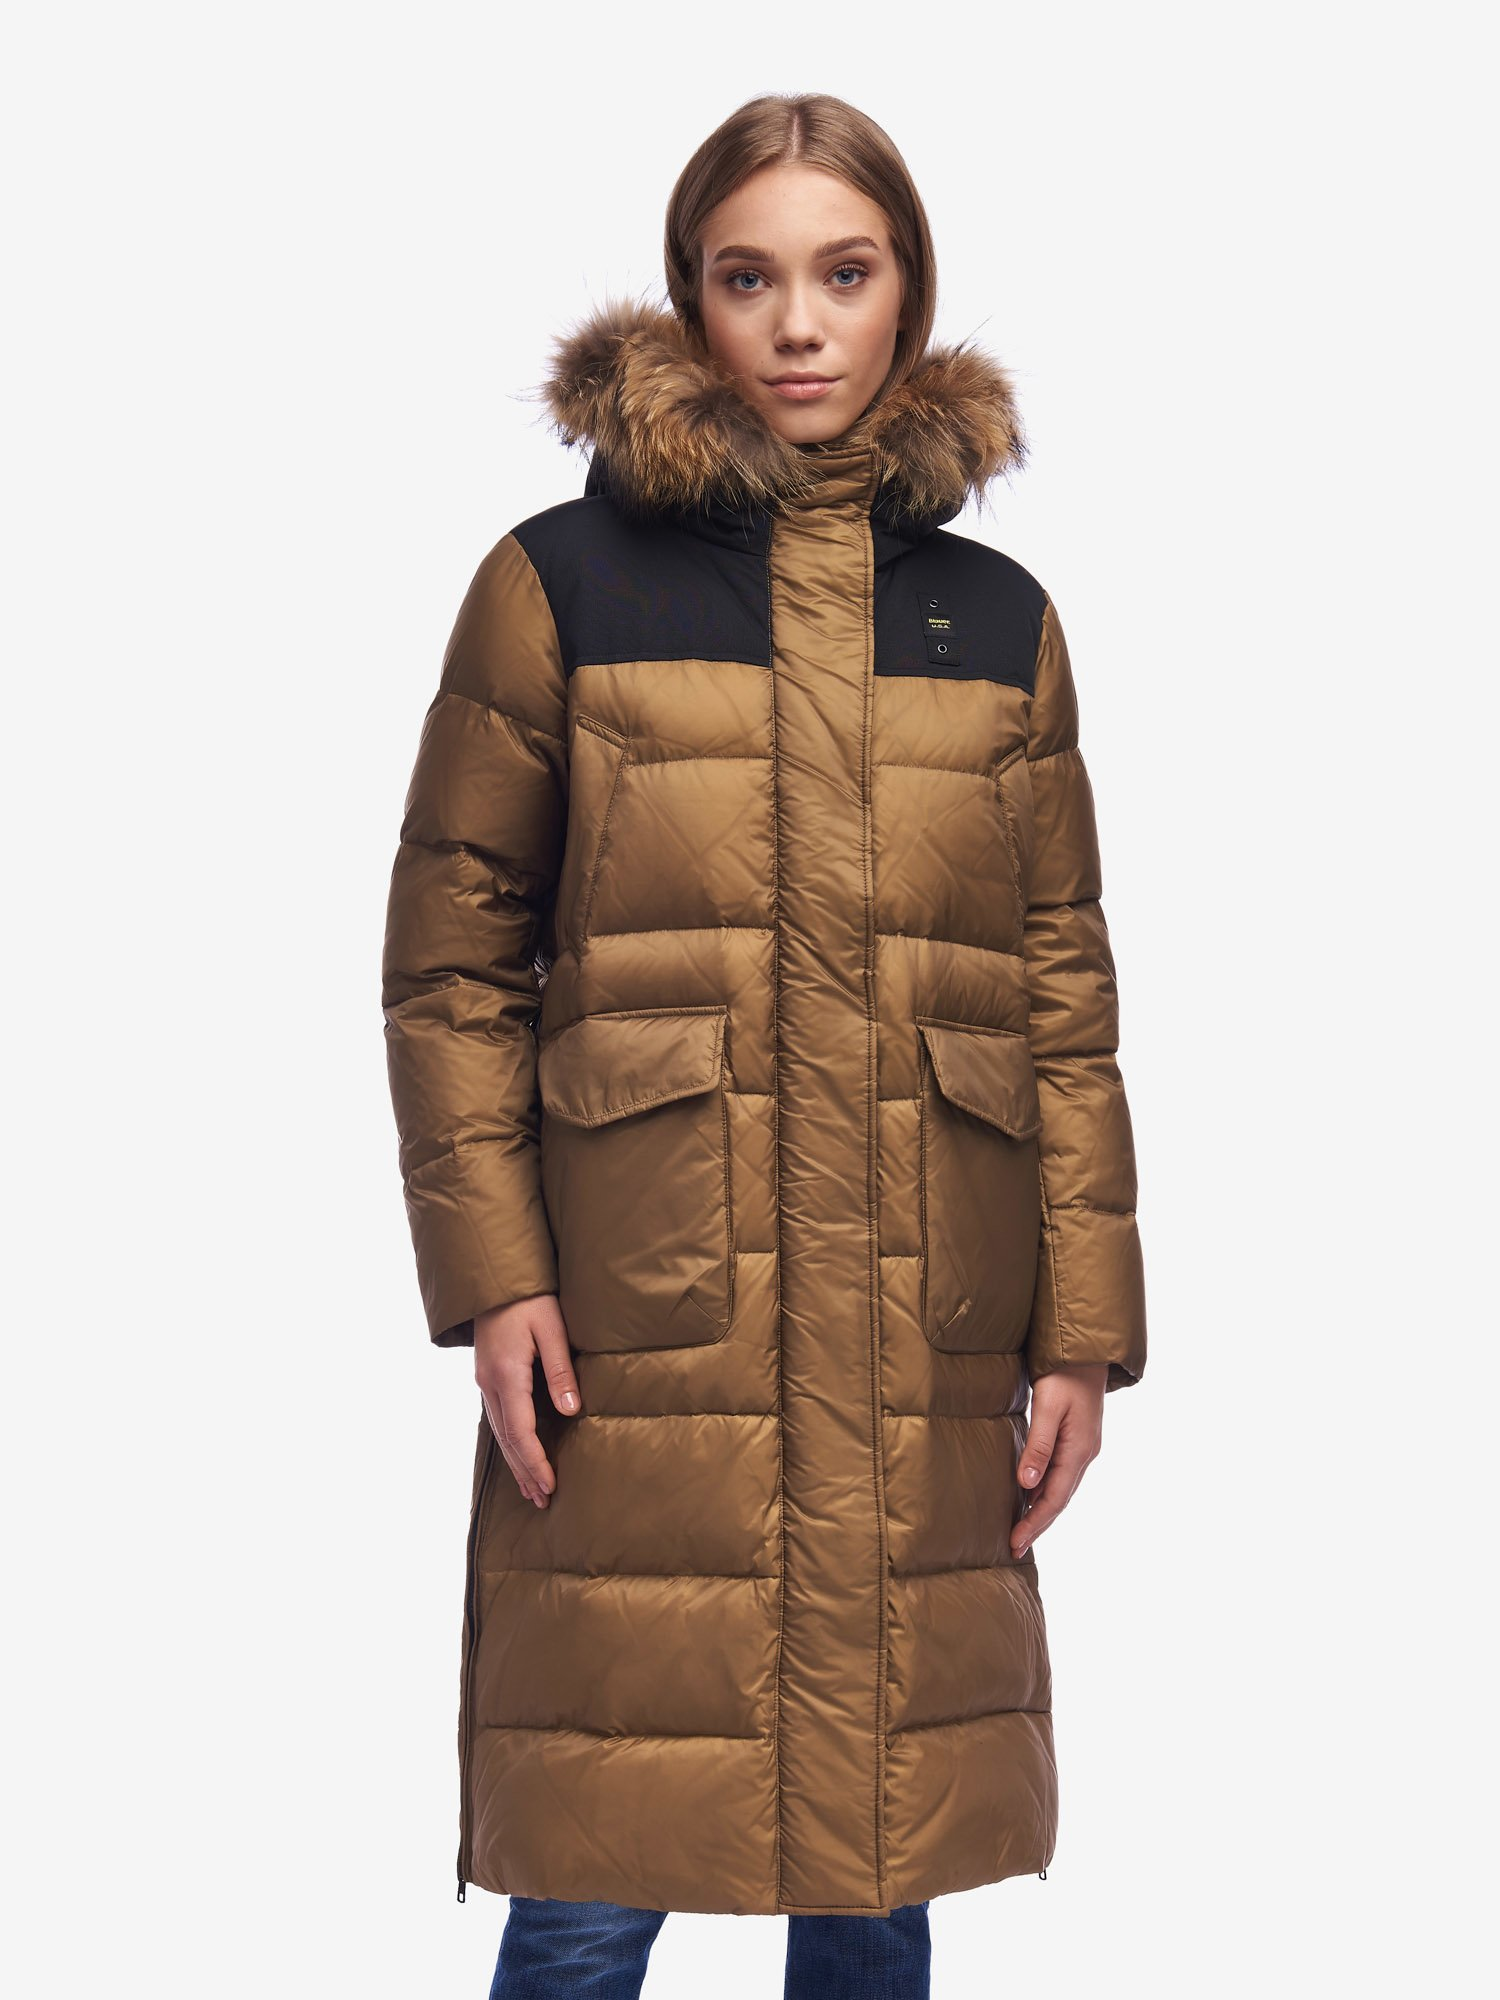 LAWRENCE LONG DOWN JACKET WITH SIDE SLITS - Blauer